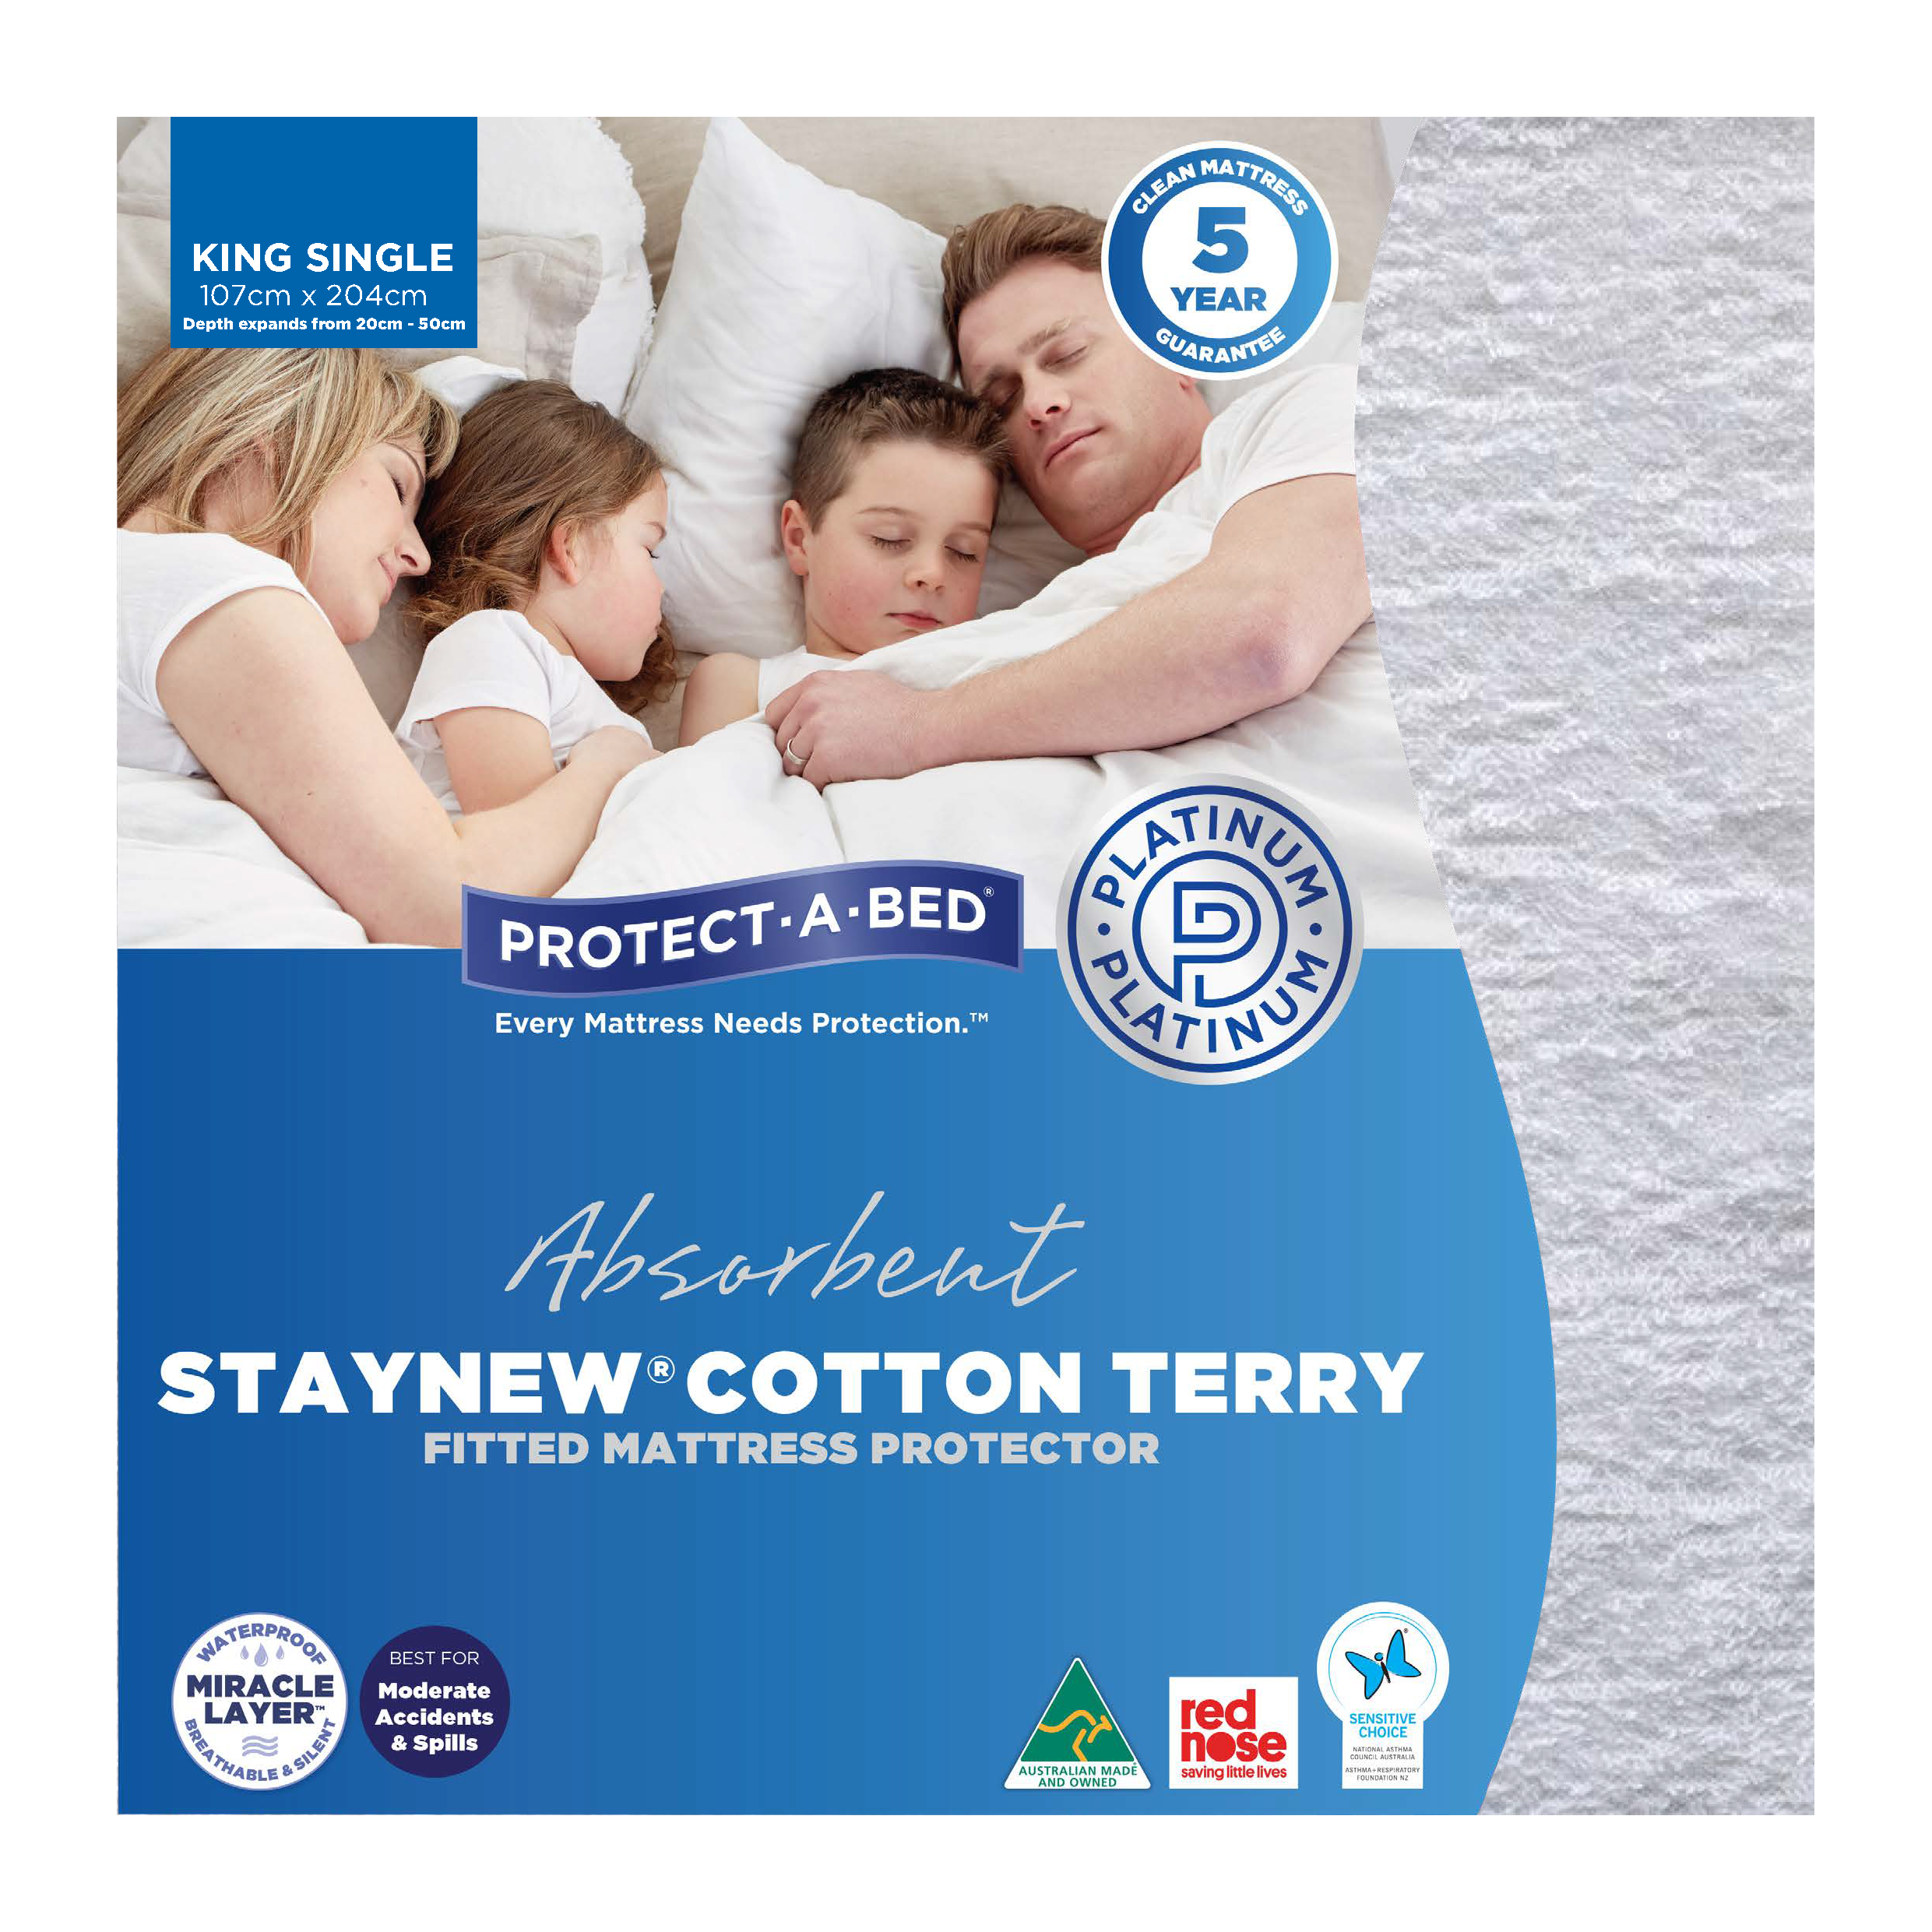 Protect-A-Bed Cotton Terry – King Single Mattress Protector